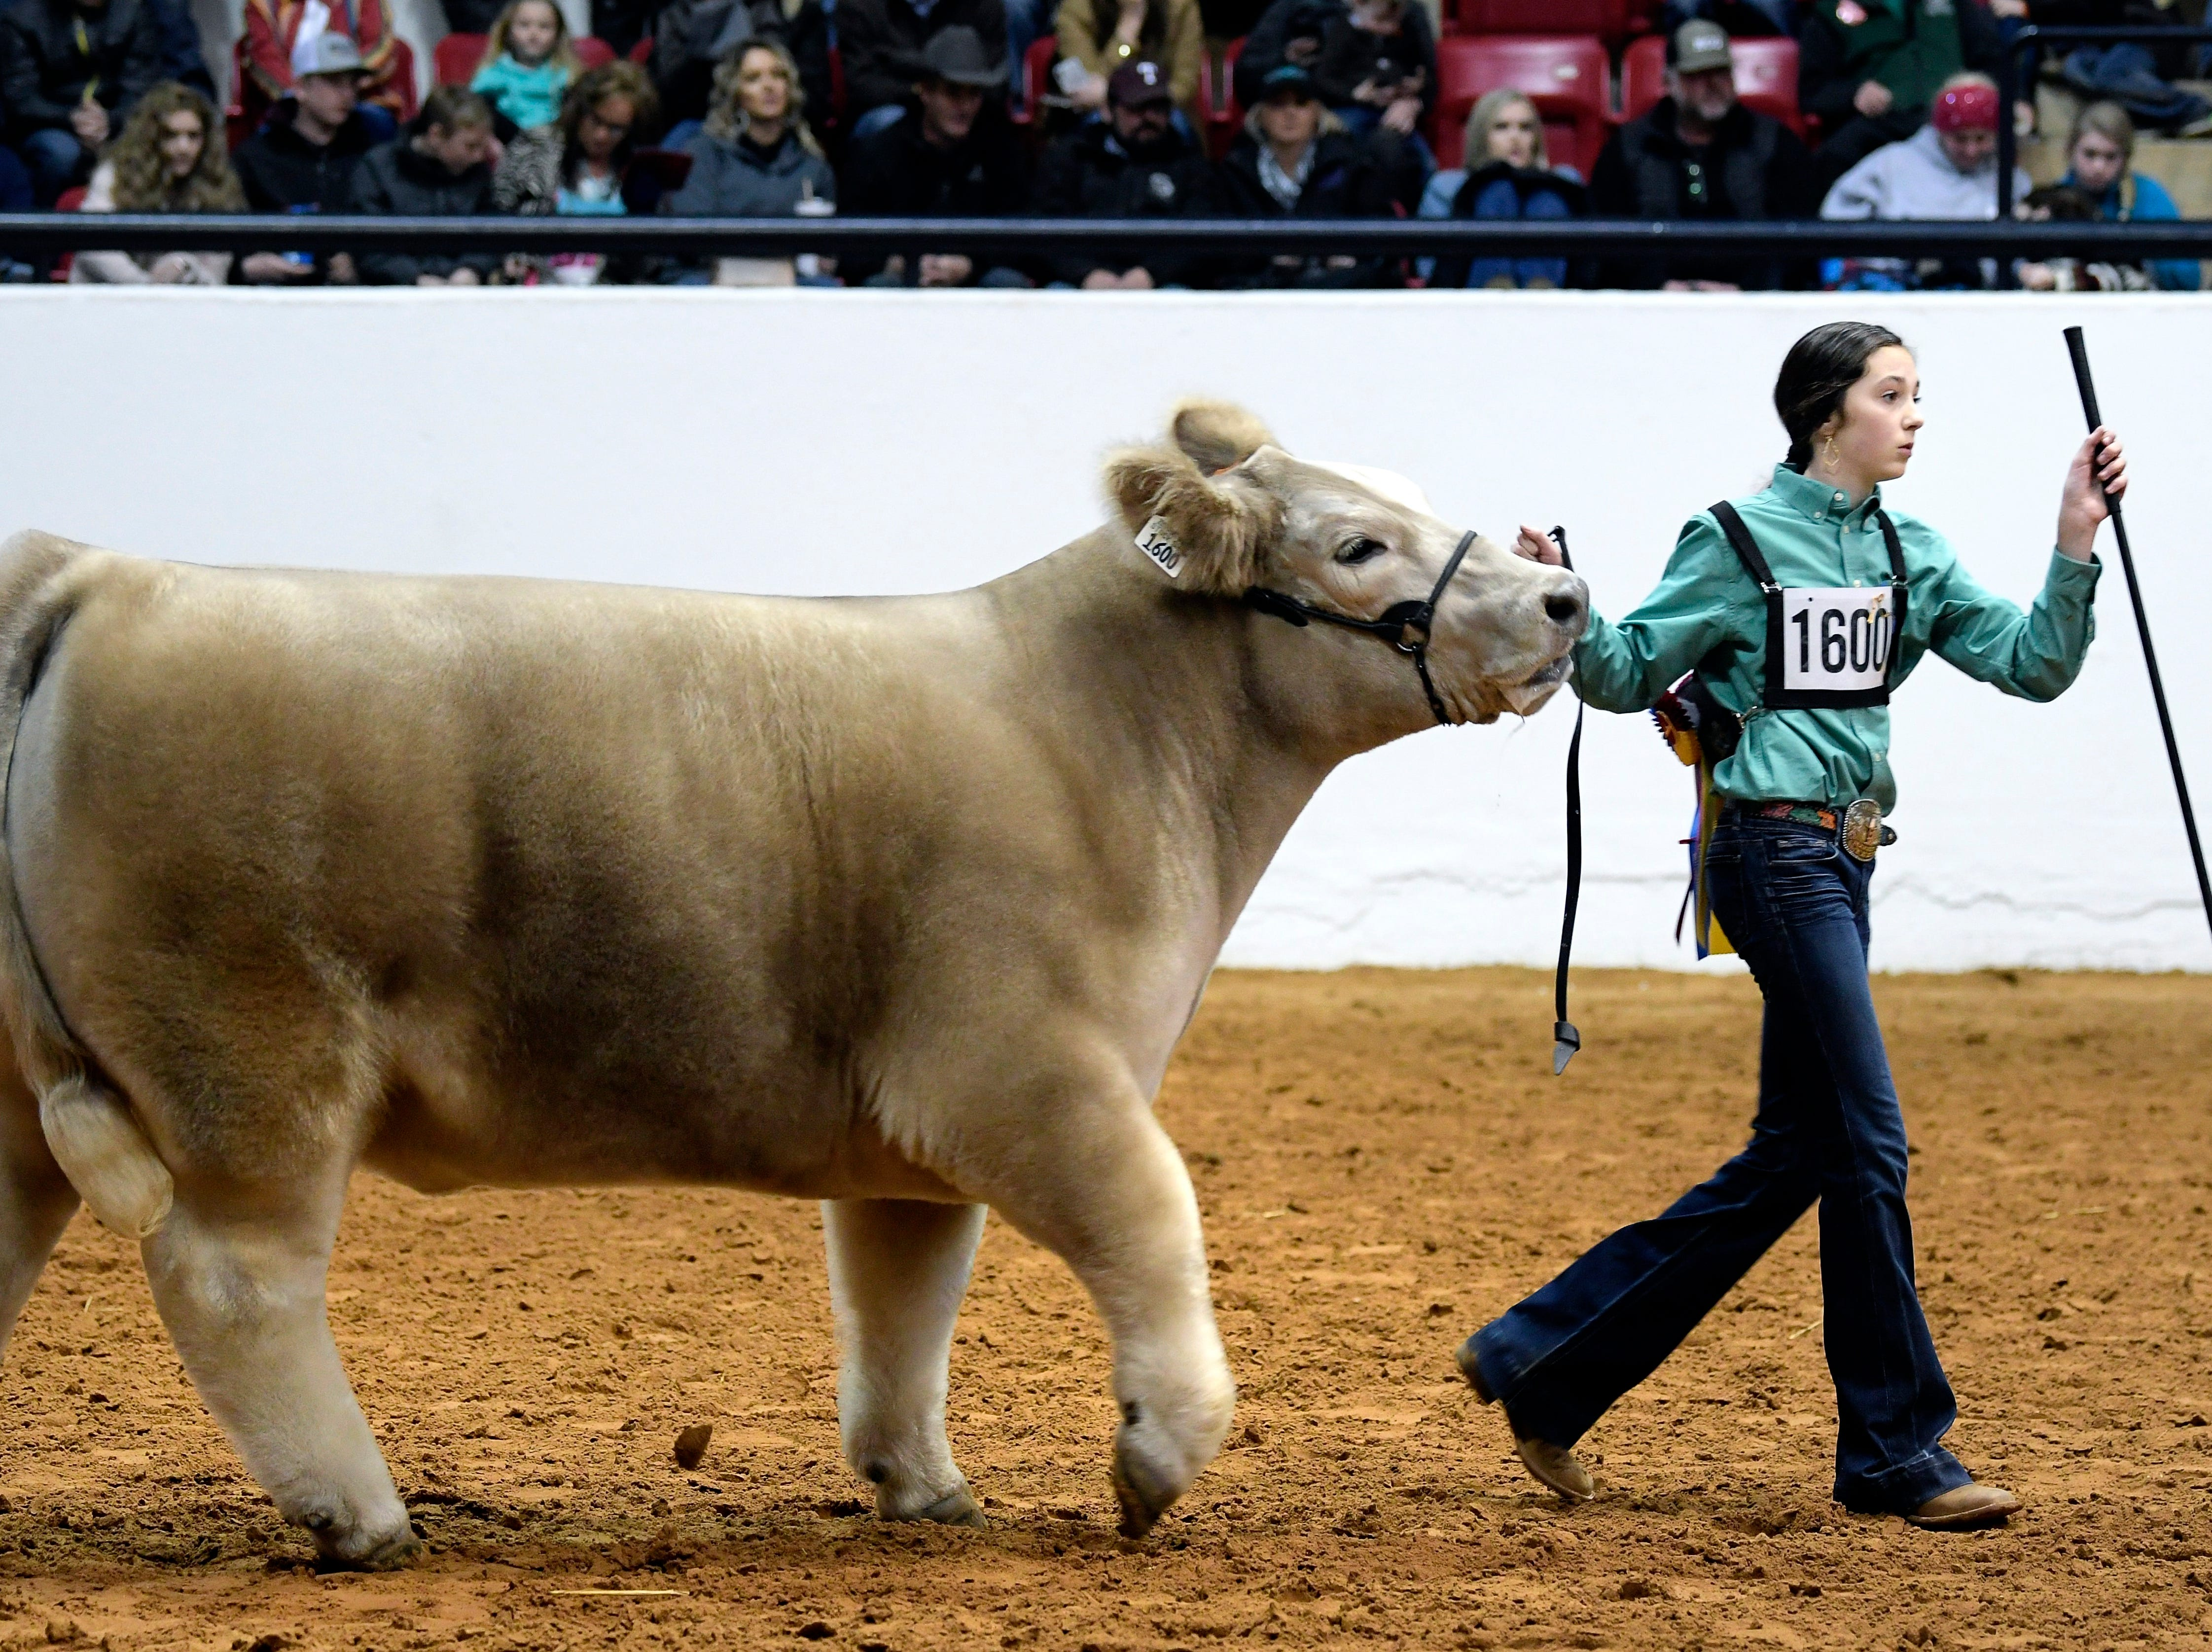 Aven Horn shows her steer Bentley during the Grand Champion steer round of the Stock Show at Will Rogers Memorial Center in Fort Worth, Texas, Friday, Feb. 8, 2019. Bentley was named Grand Champion steer.